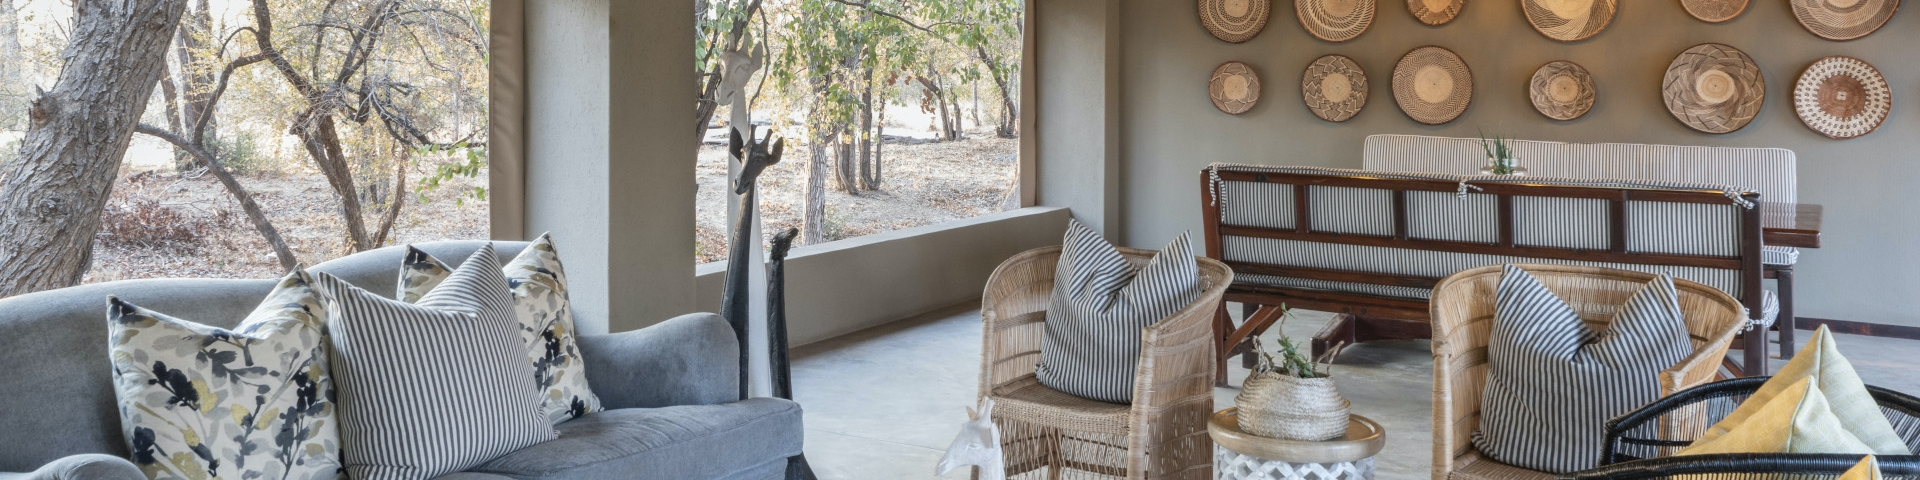 Banner accommodation xananetsi private camp klaserie south africa